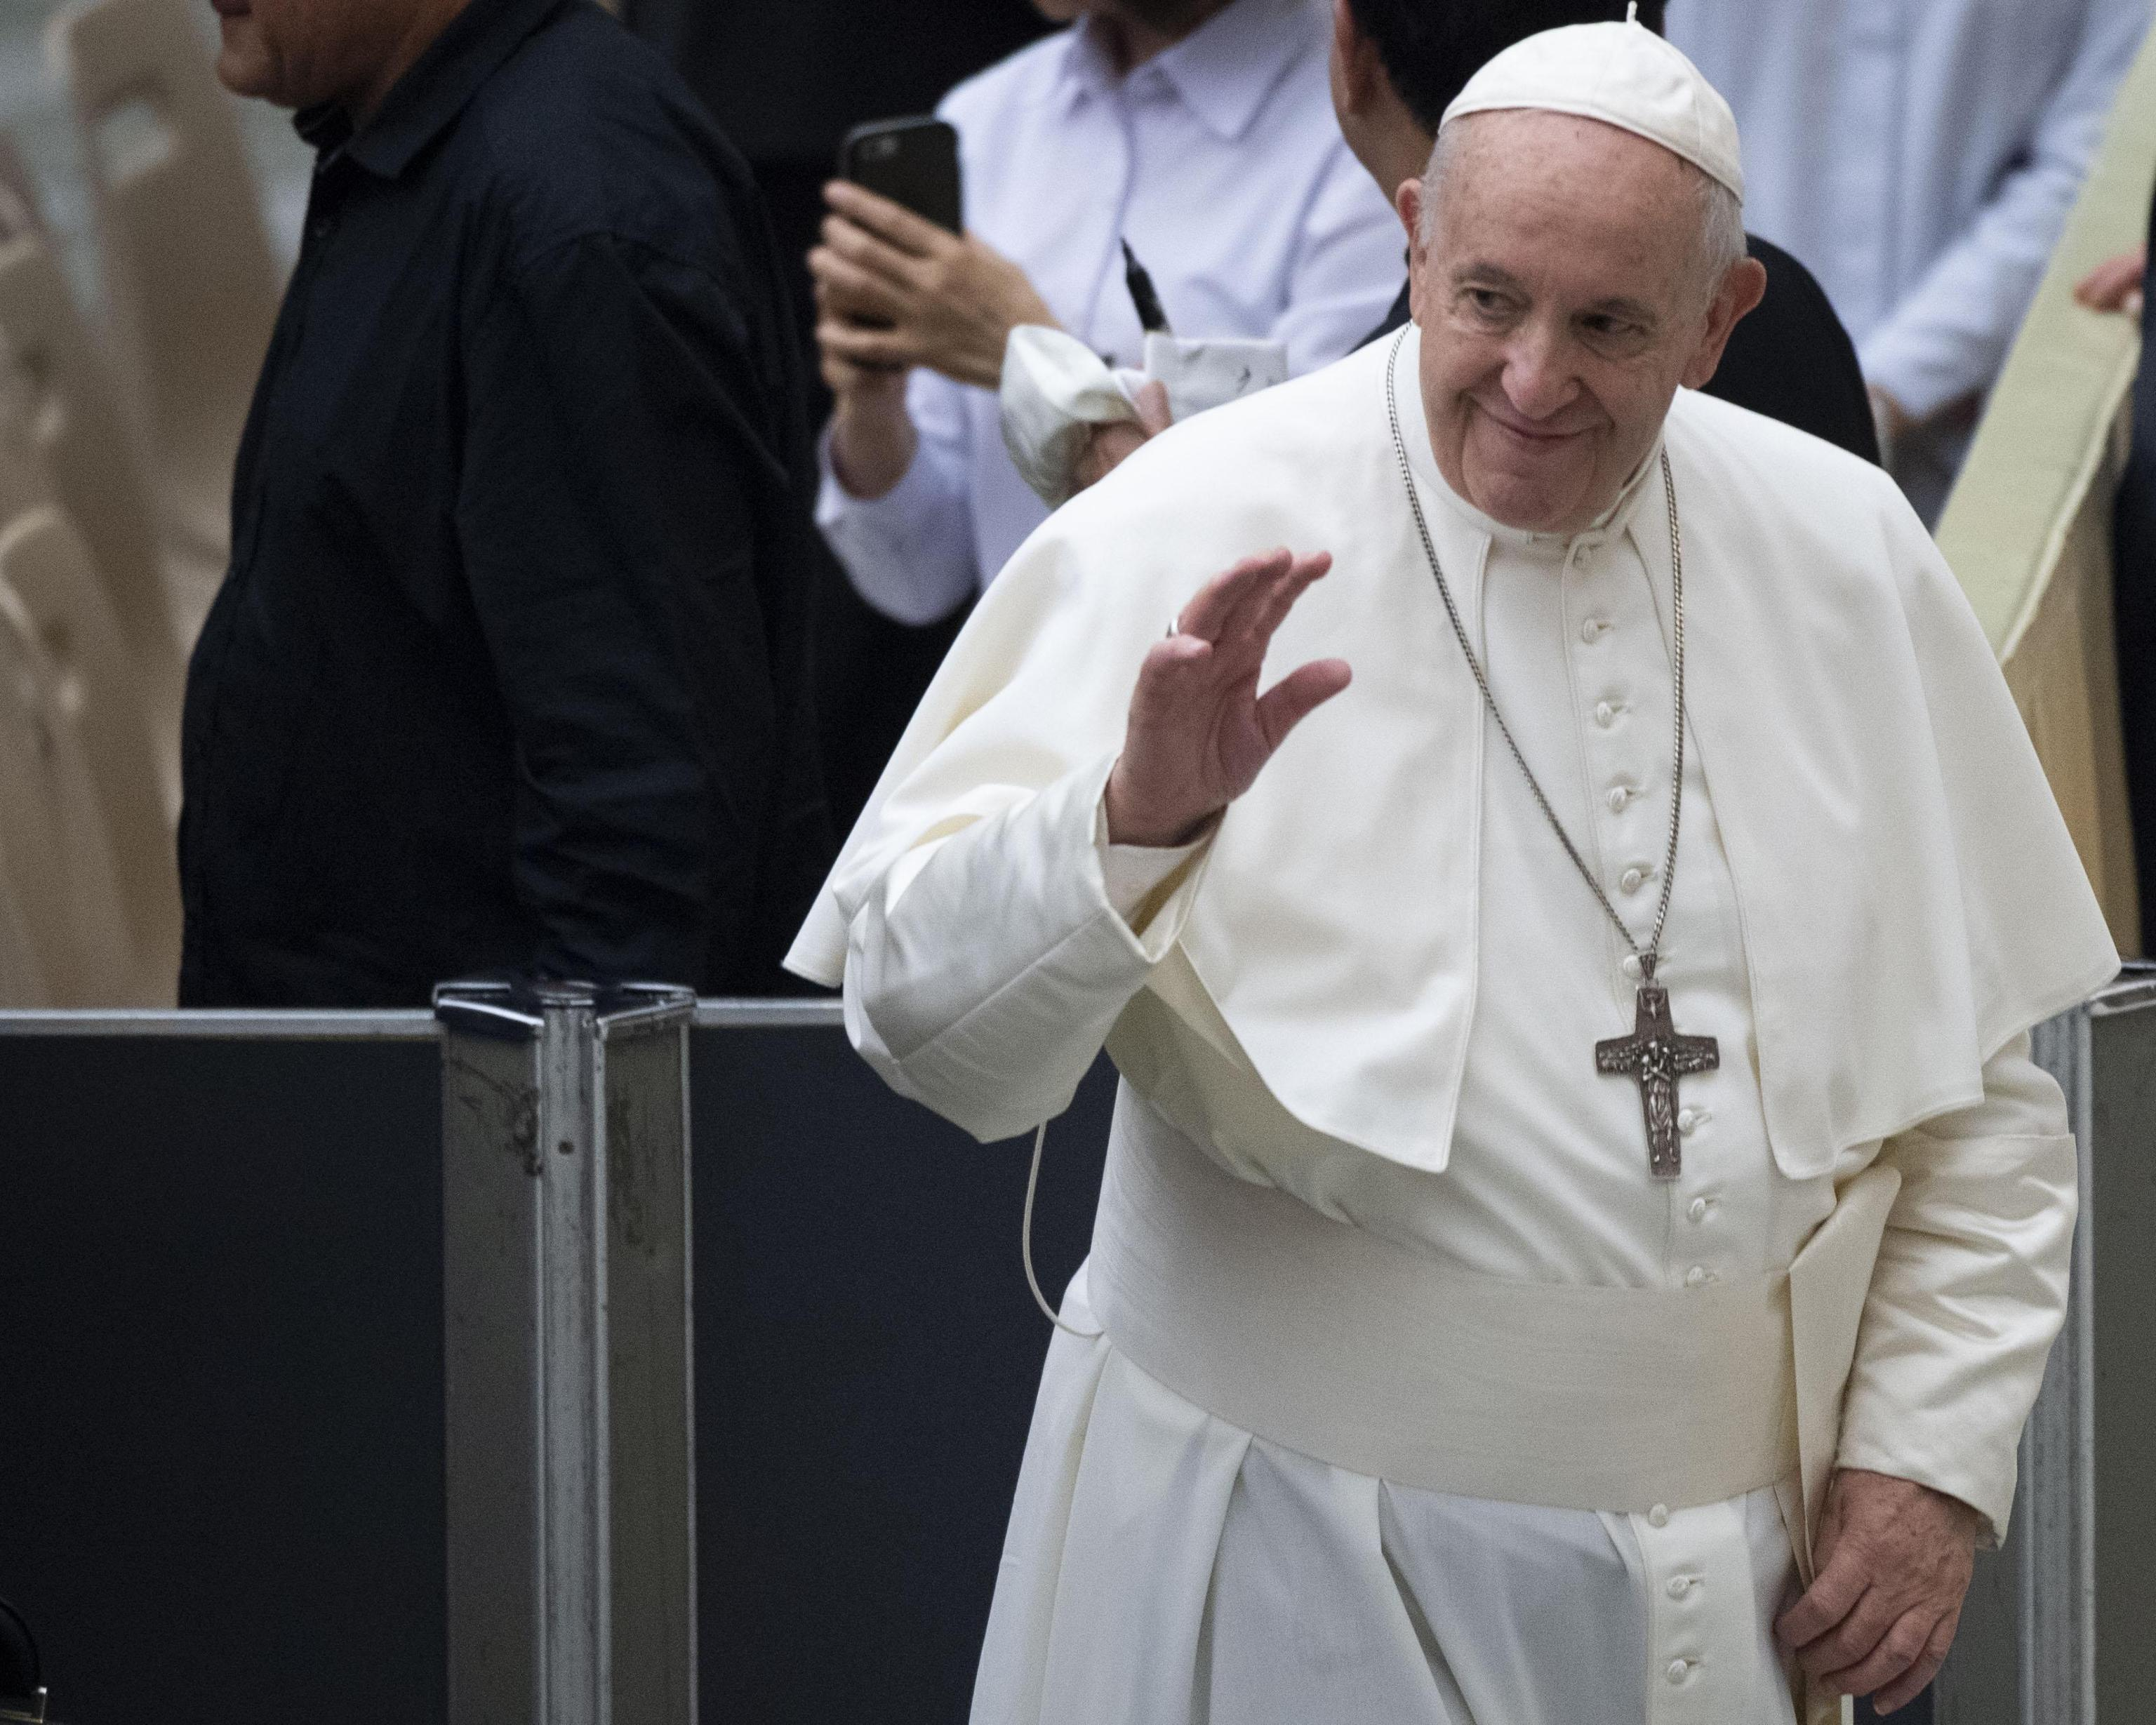 Pope Francis again warns against nationalism, says recent speeches sound like 'Hitler in 1934' - The Washington Post